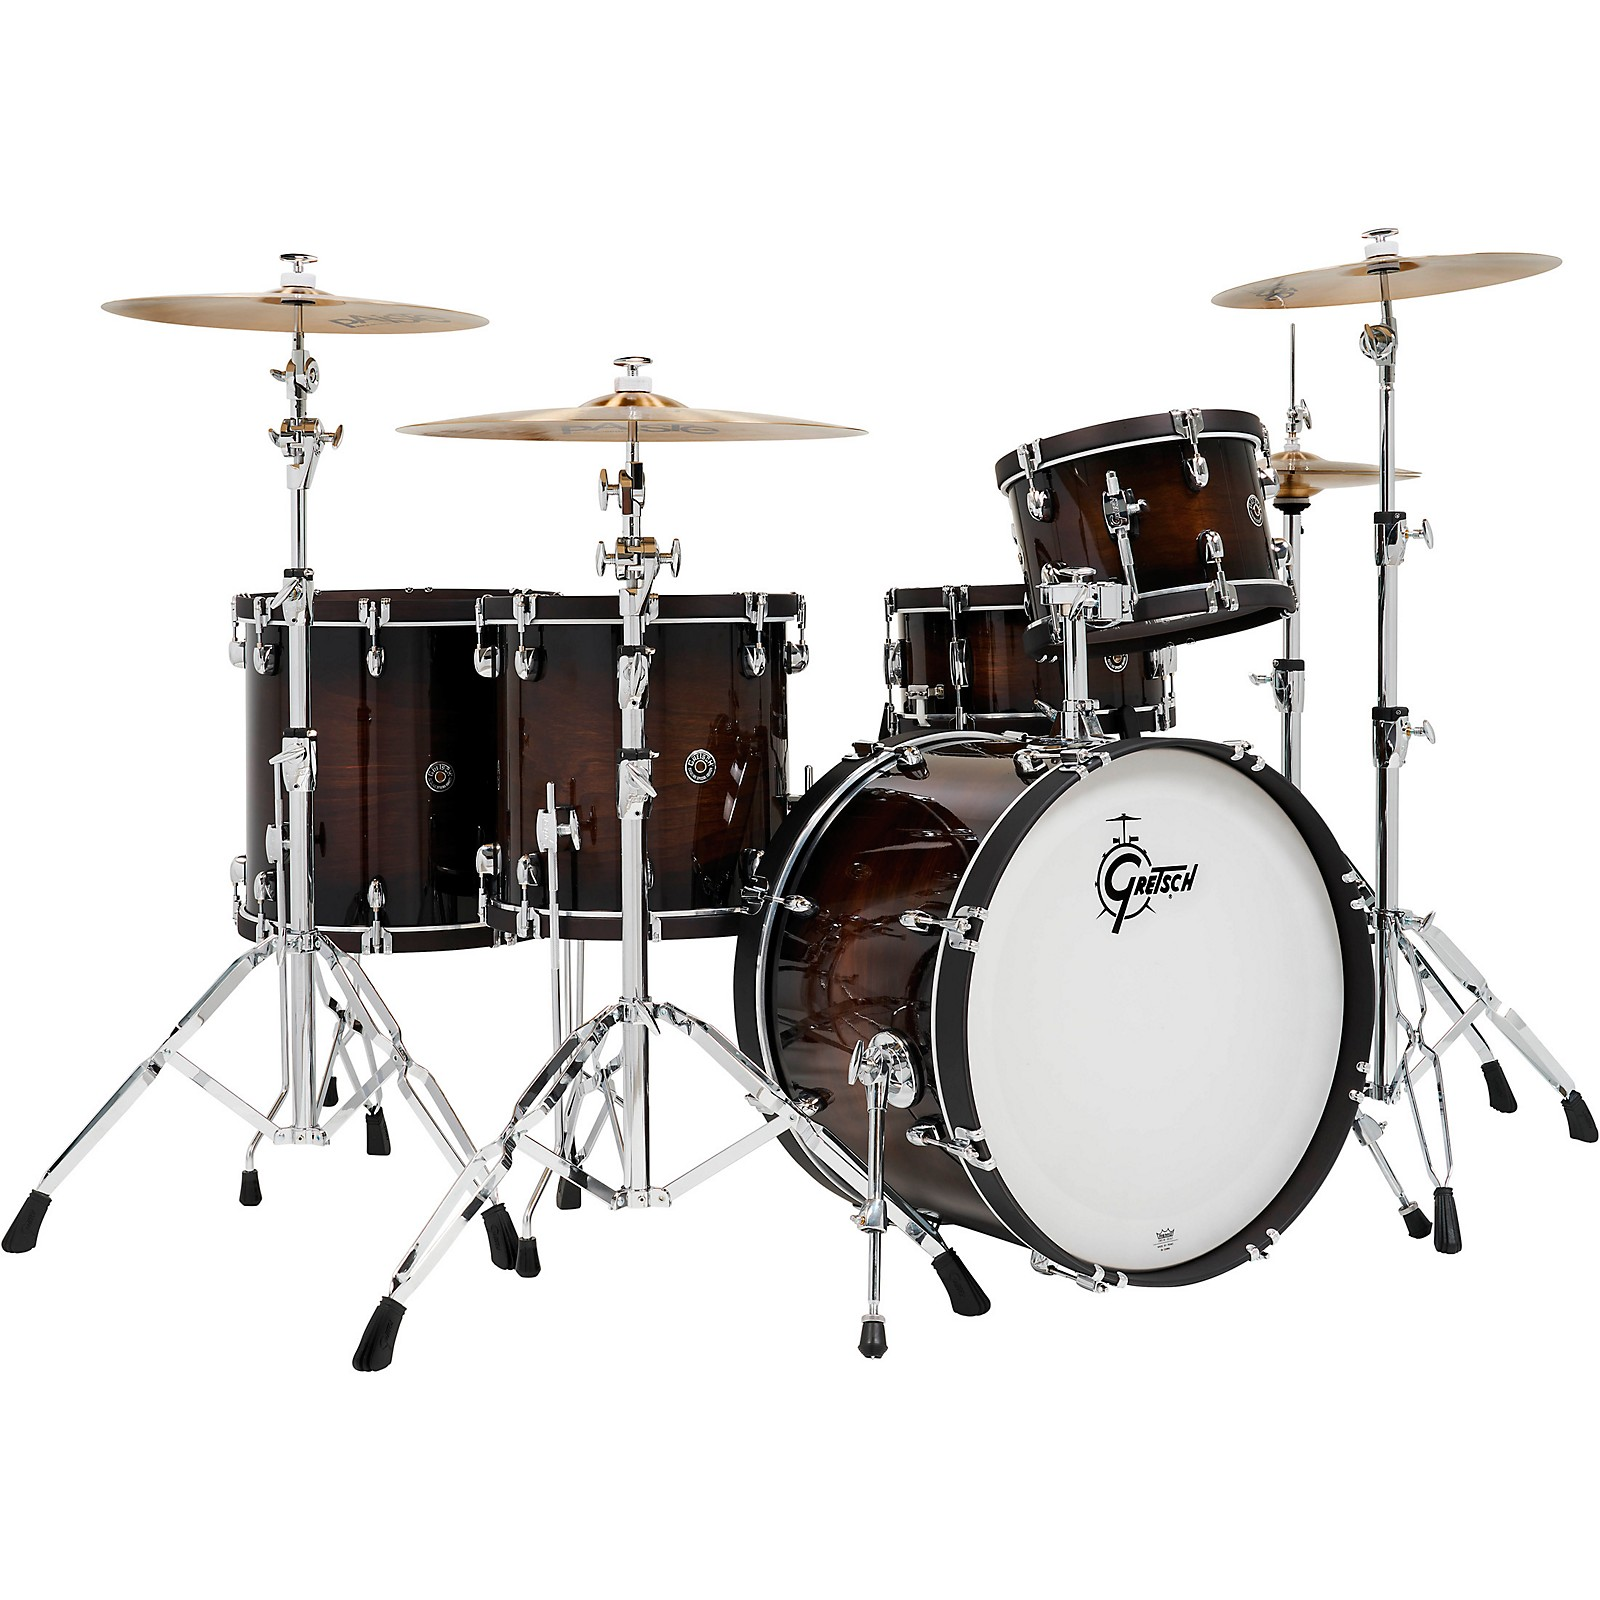 Gretsch Drums Catalina Special Edition Walnut/Maple 5-Piece Shell Pack with Wood Hoops and 22 in. Bass Drum